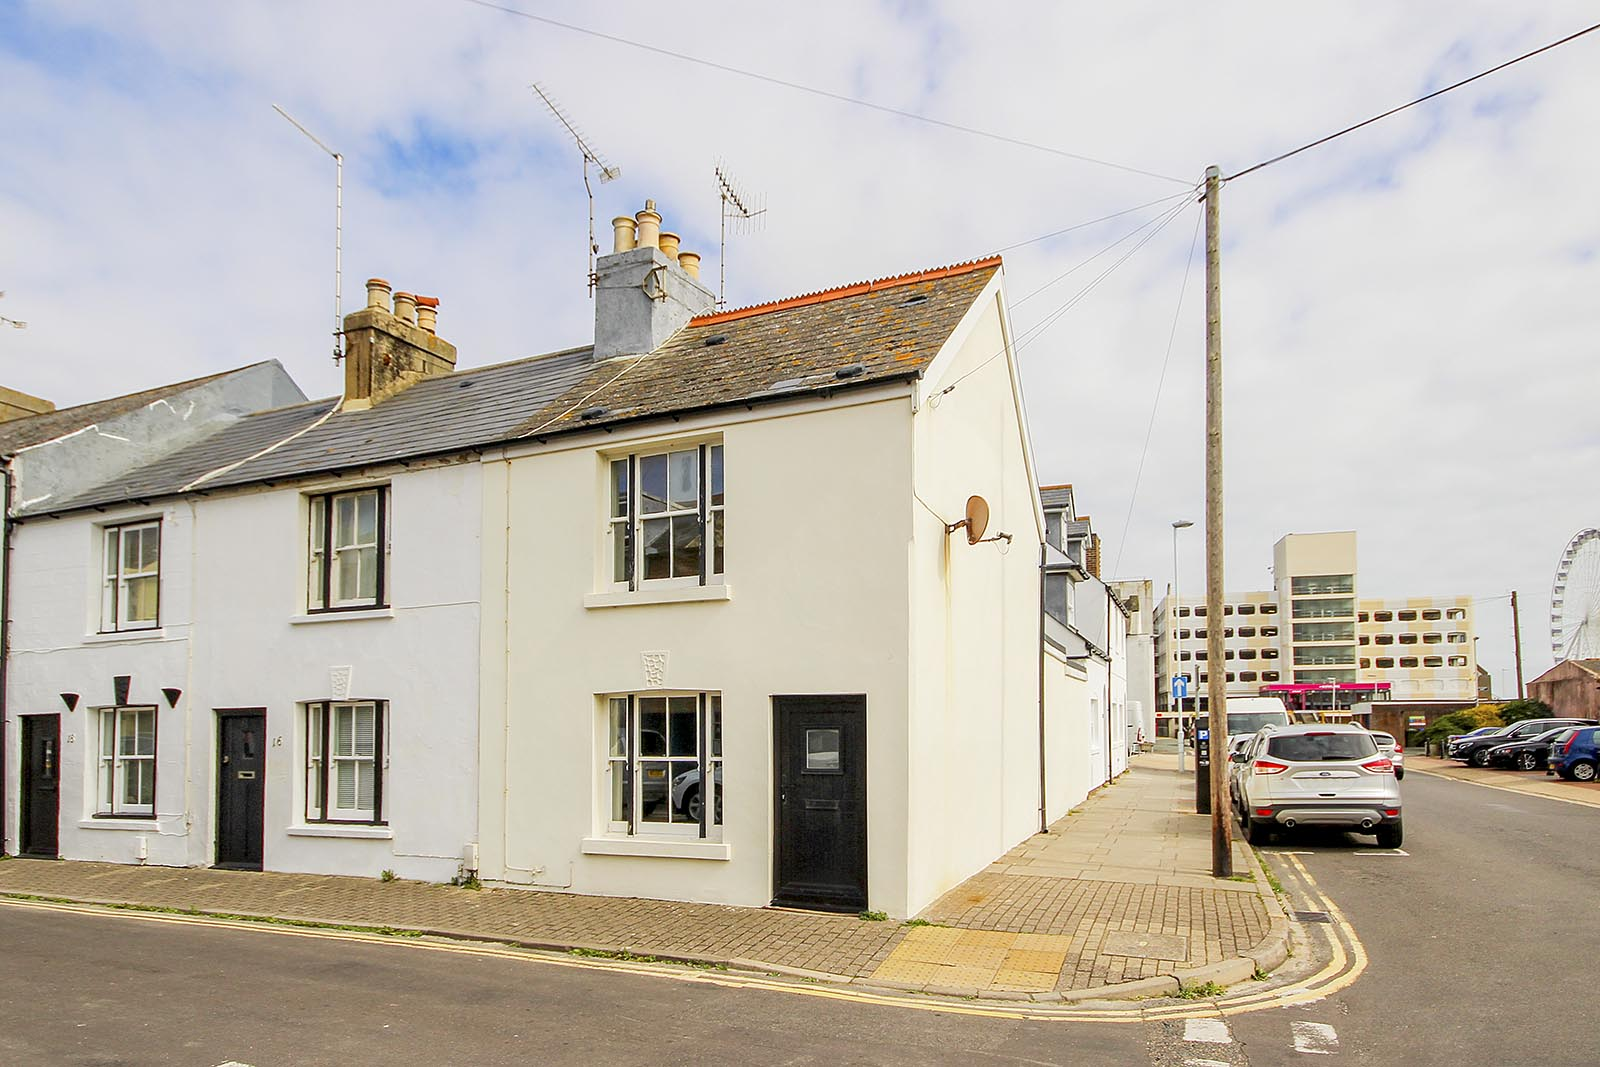 3 bed house to rent in New Street, Worthing - Property Image 1